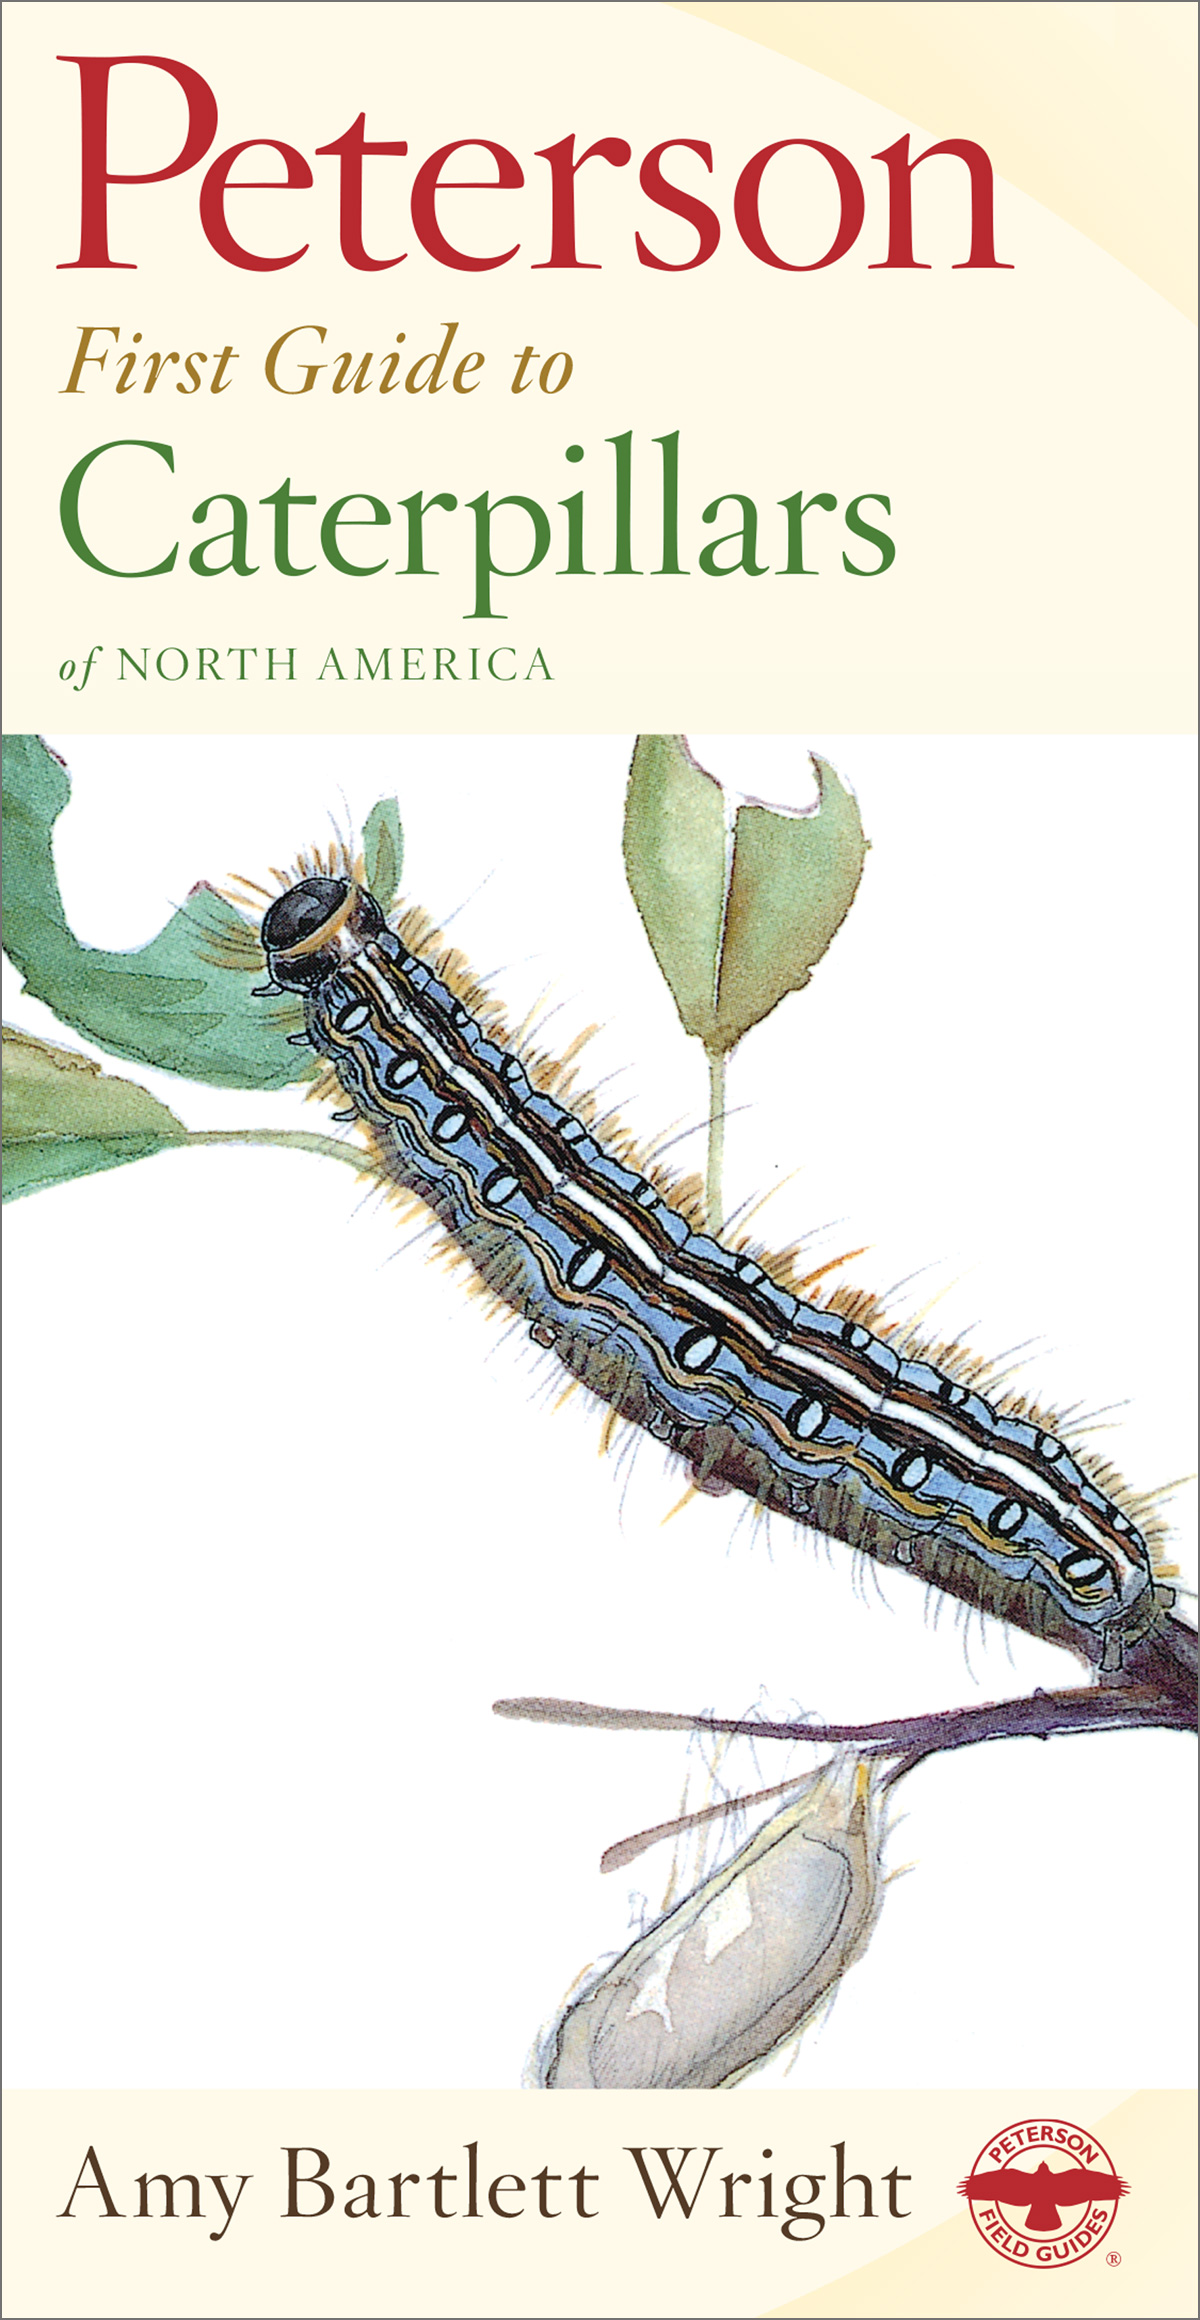 Peterson First Guide to Caterpillars of North America-9780395911846